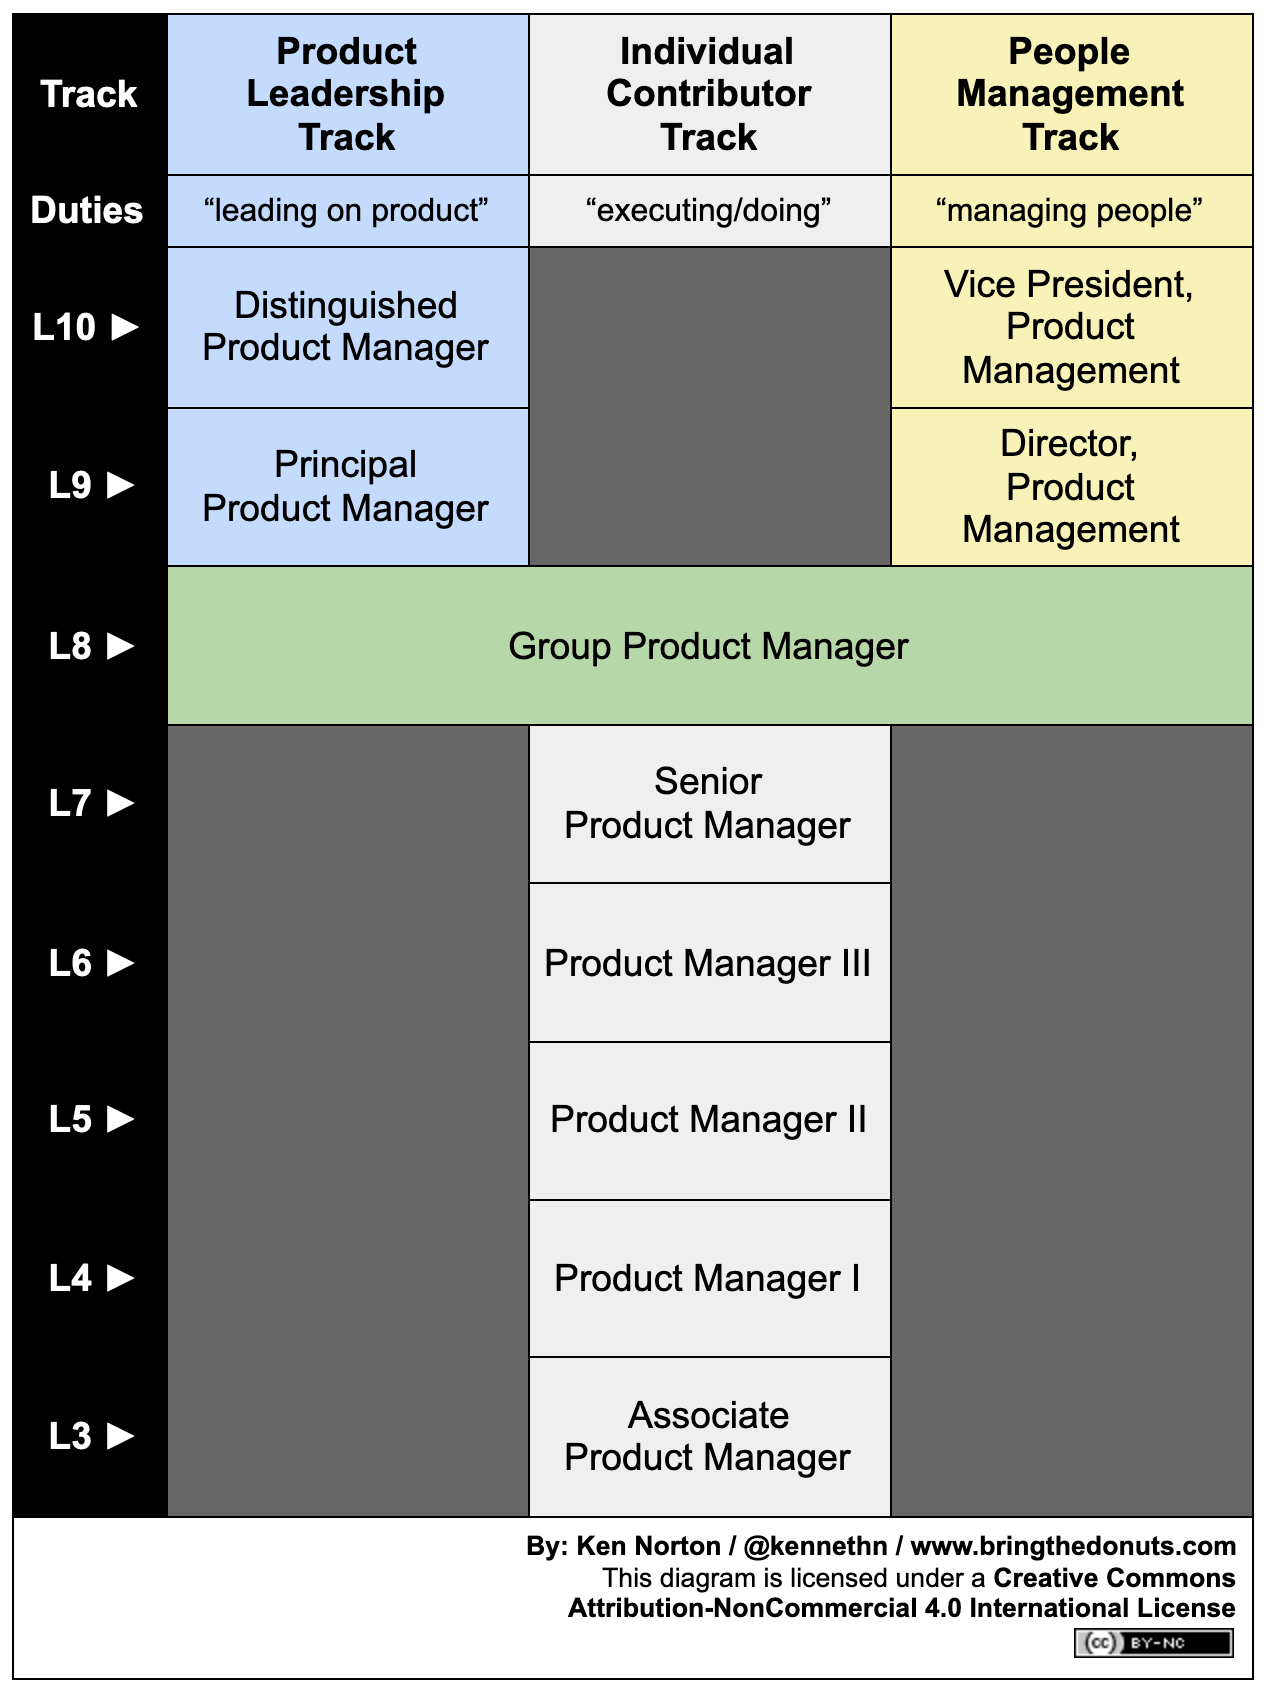 Dual Product Management Career Ladder: see caption for link to text version